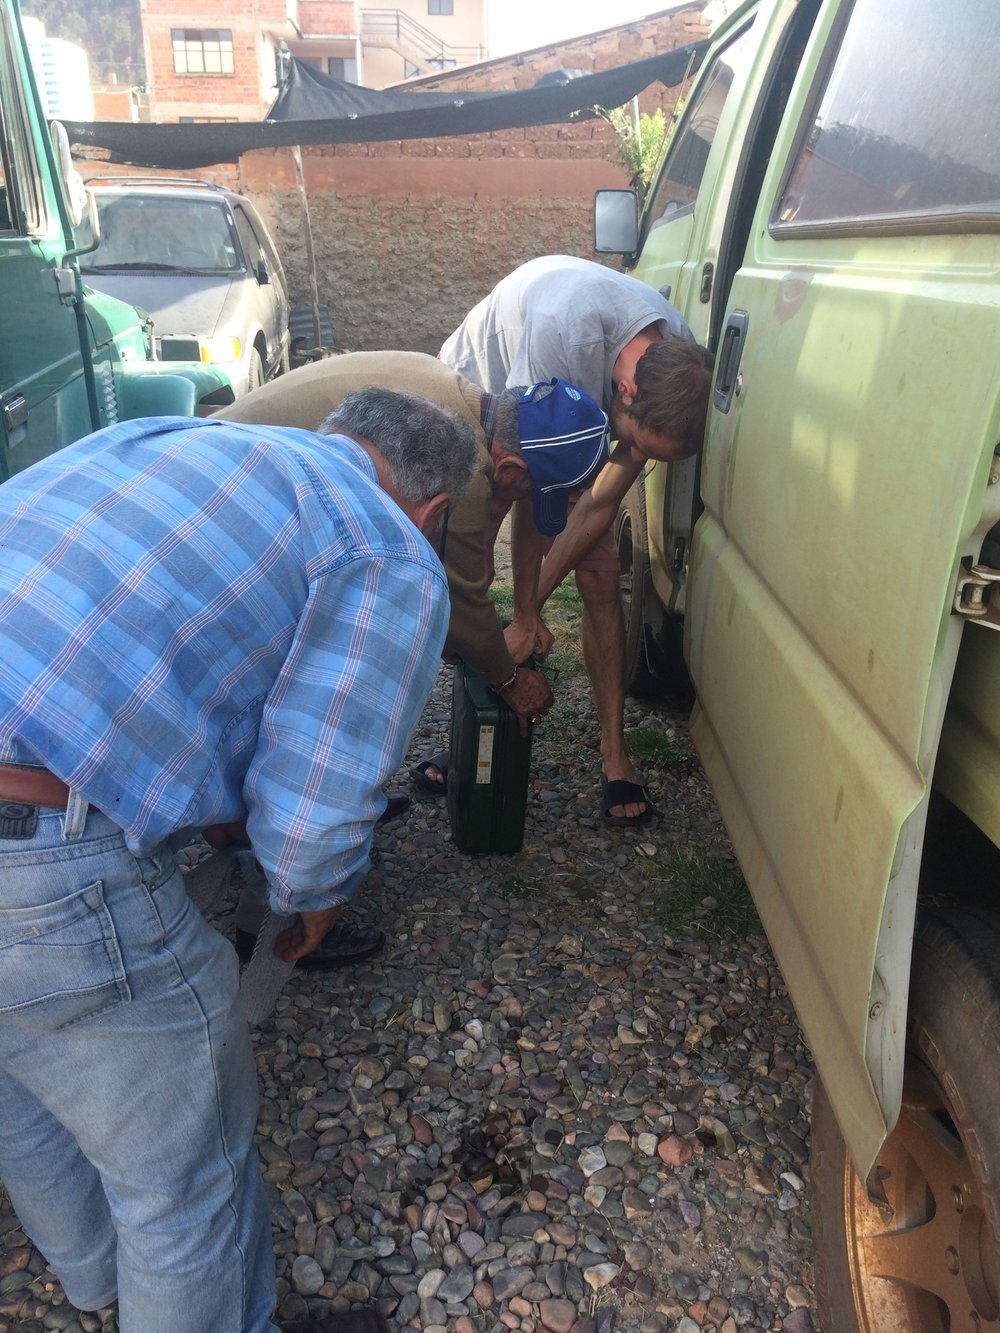 overlanding south america: accidentally drank diesel